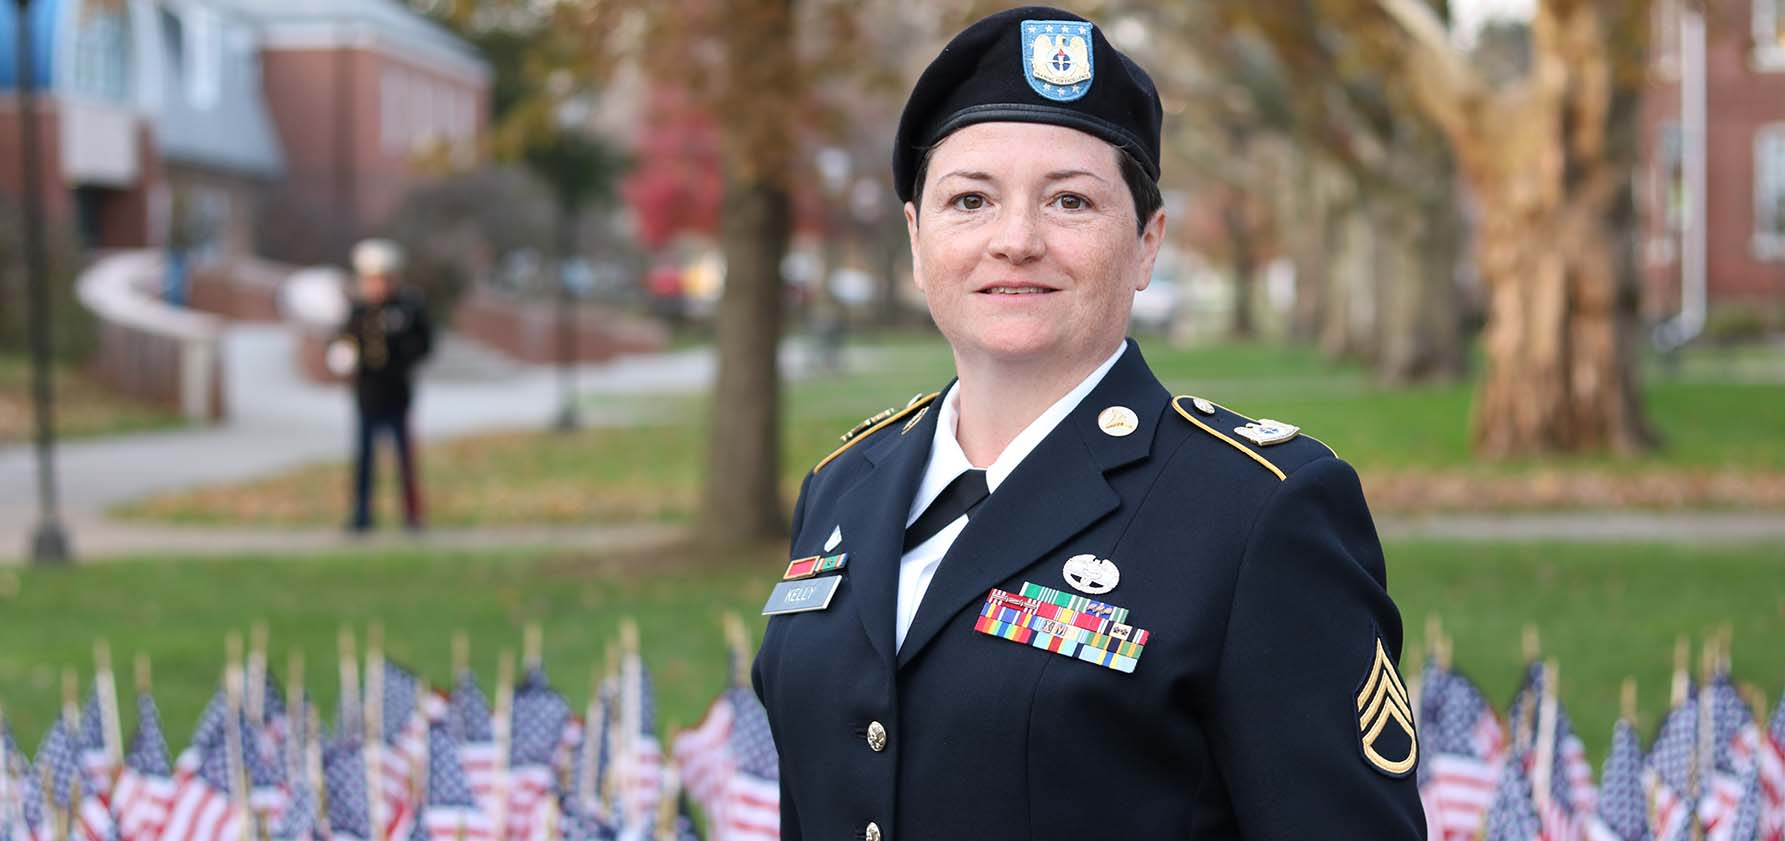 Marilyn Kelly-Cavotta, director of veteran and military affairs stands in uniform in front of American flags placed in the ground on Moravian's Campus for Veterans Day.